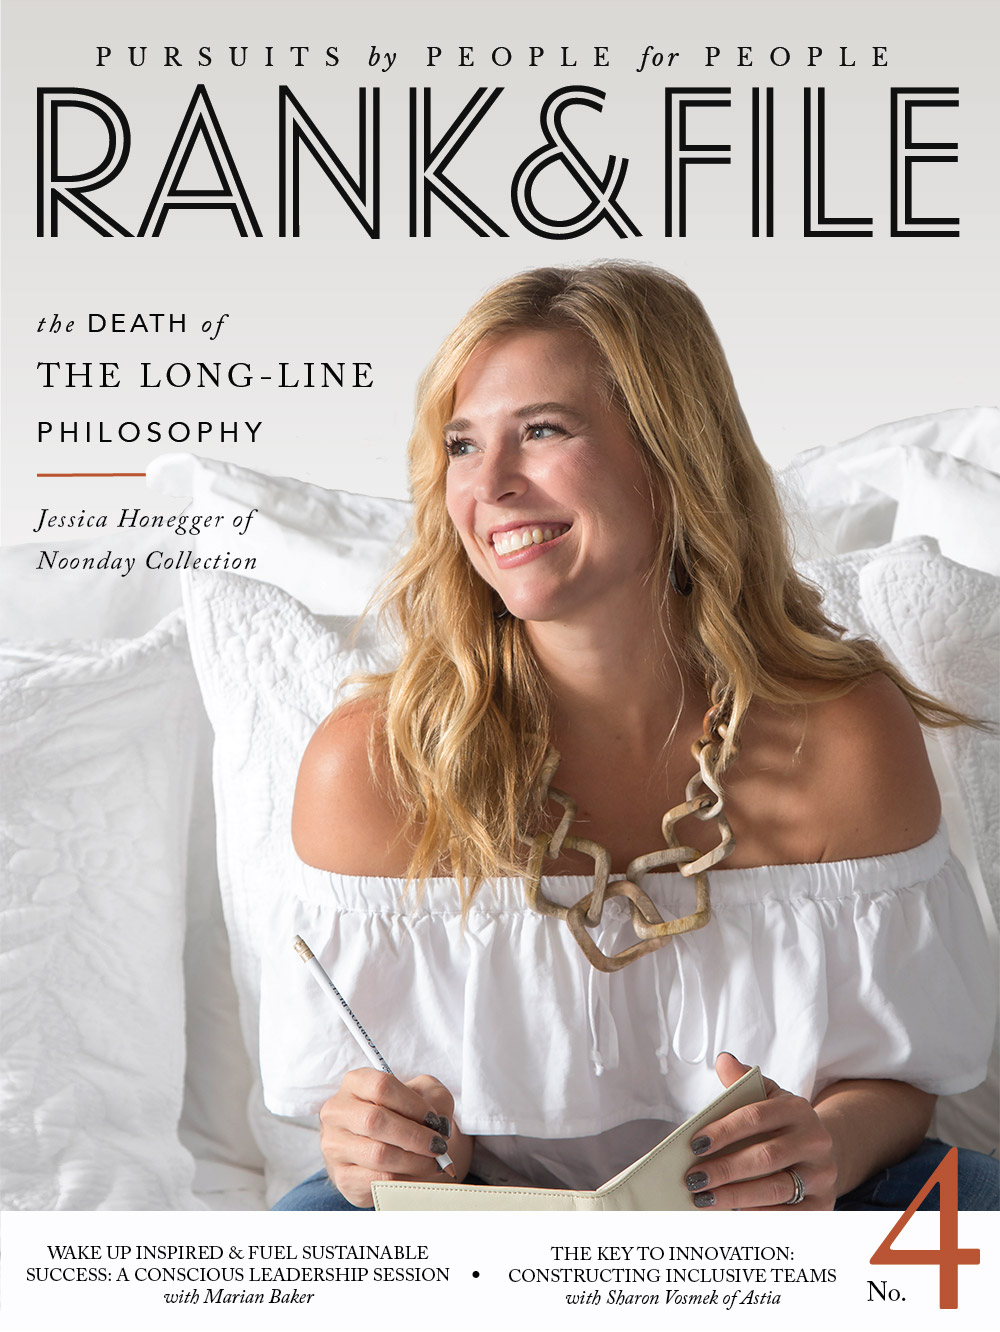 Kari Stinehour, Rank & File Magazine  Rank & File is a digital publication and community for modern-day social entrepreneurs who want to build and scale high-impact businesses capable of tackling the world's biggest challenges.